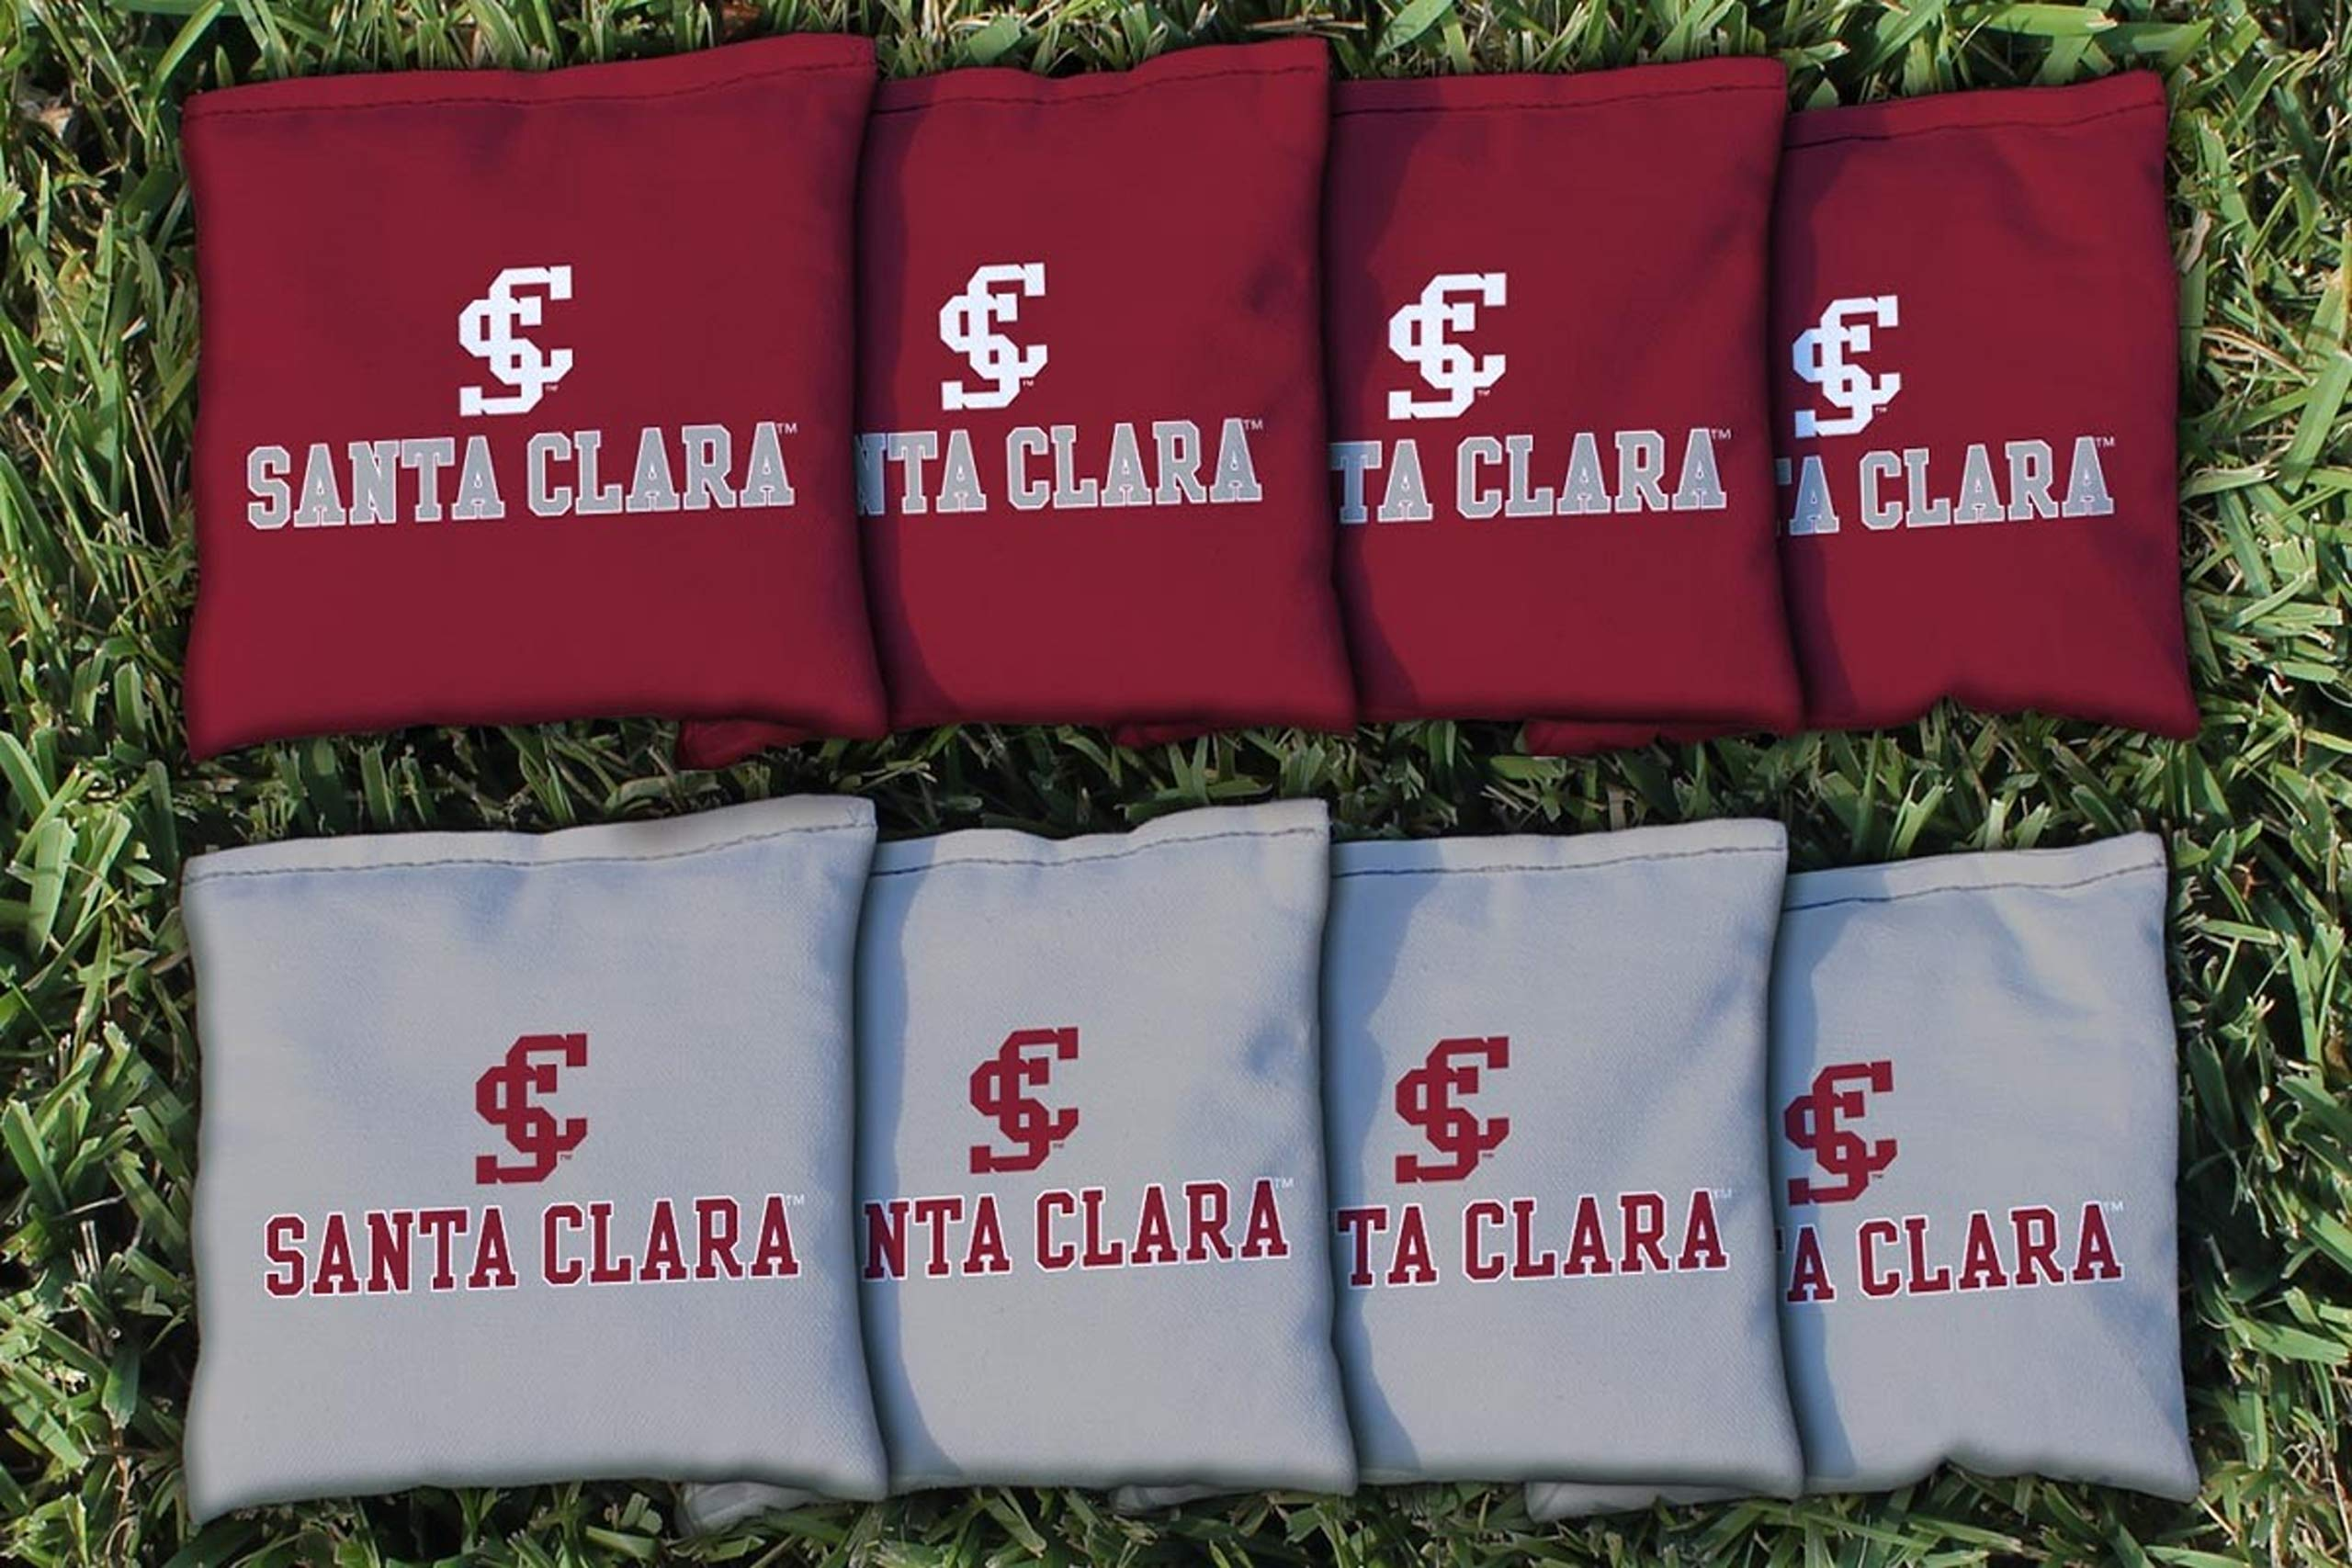 Victory Tailgate NCAA Collegiate Regulation Cornhole Game Bag Set (8 Bags Included, Corn-Filled) - Santa Clara Broncos by Victory Tailgate